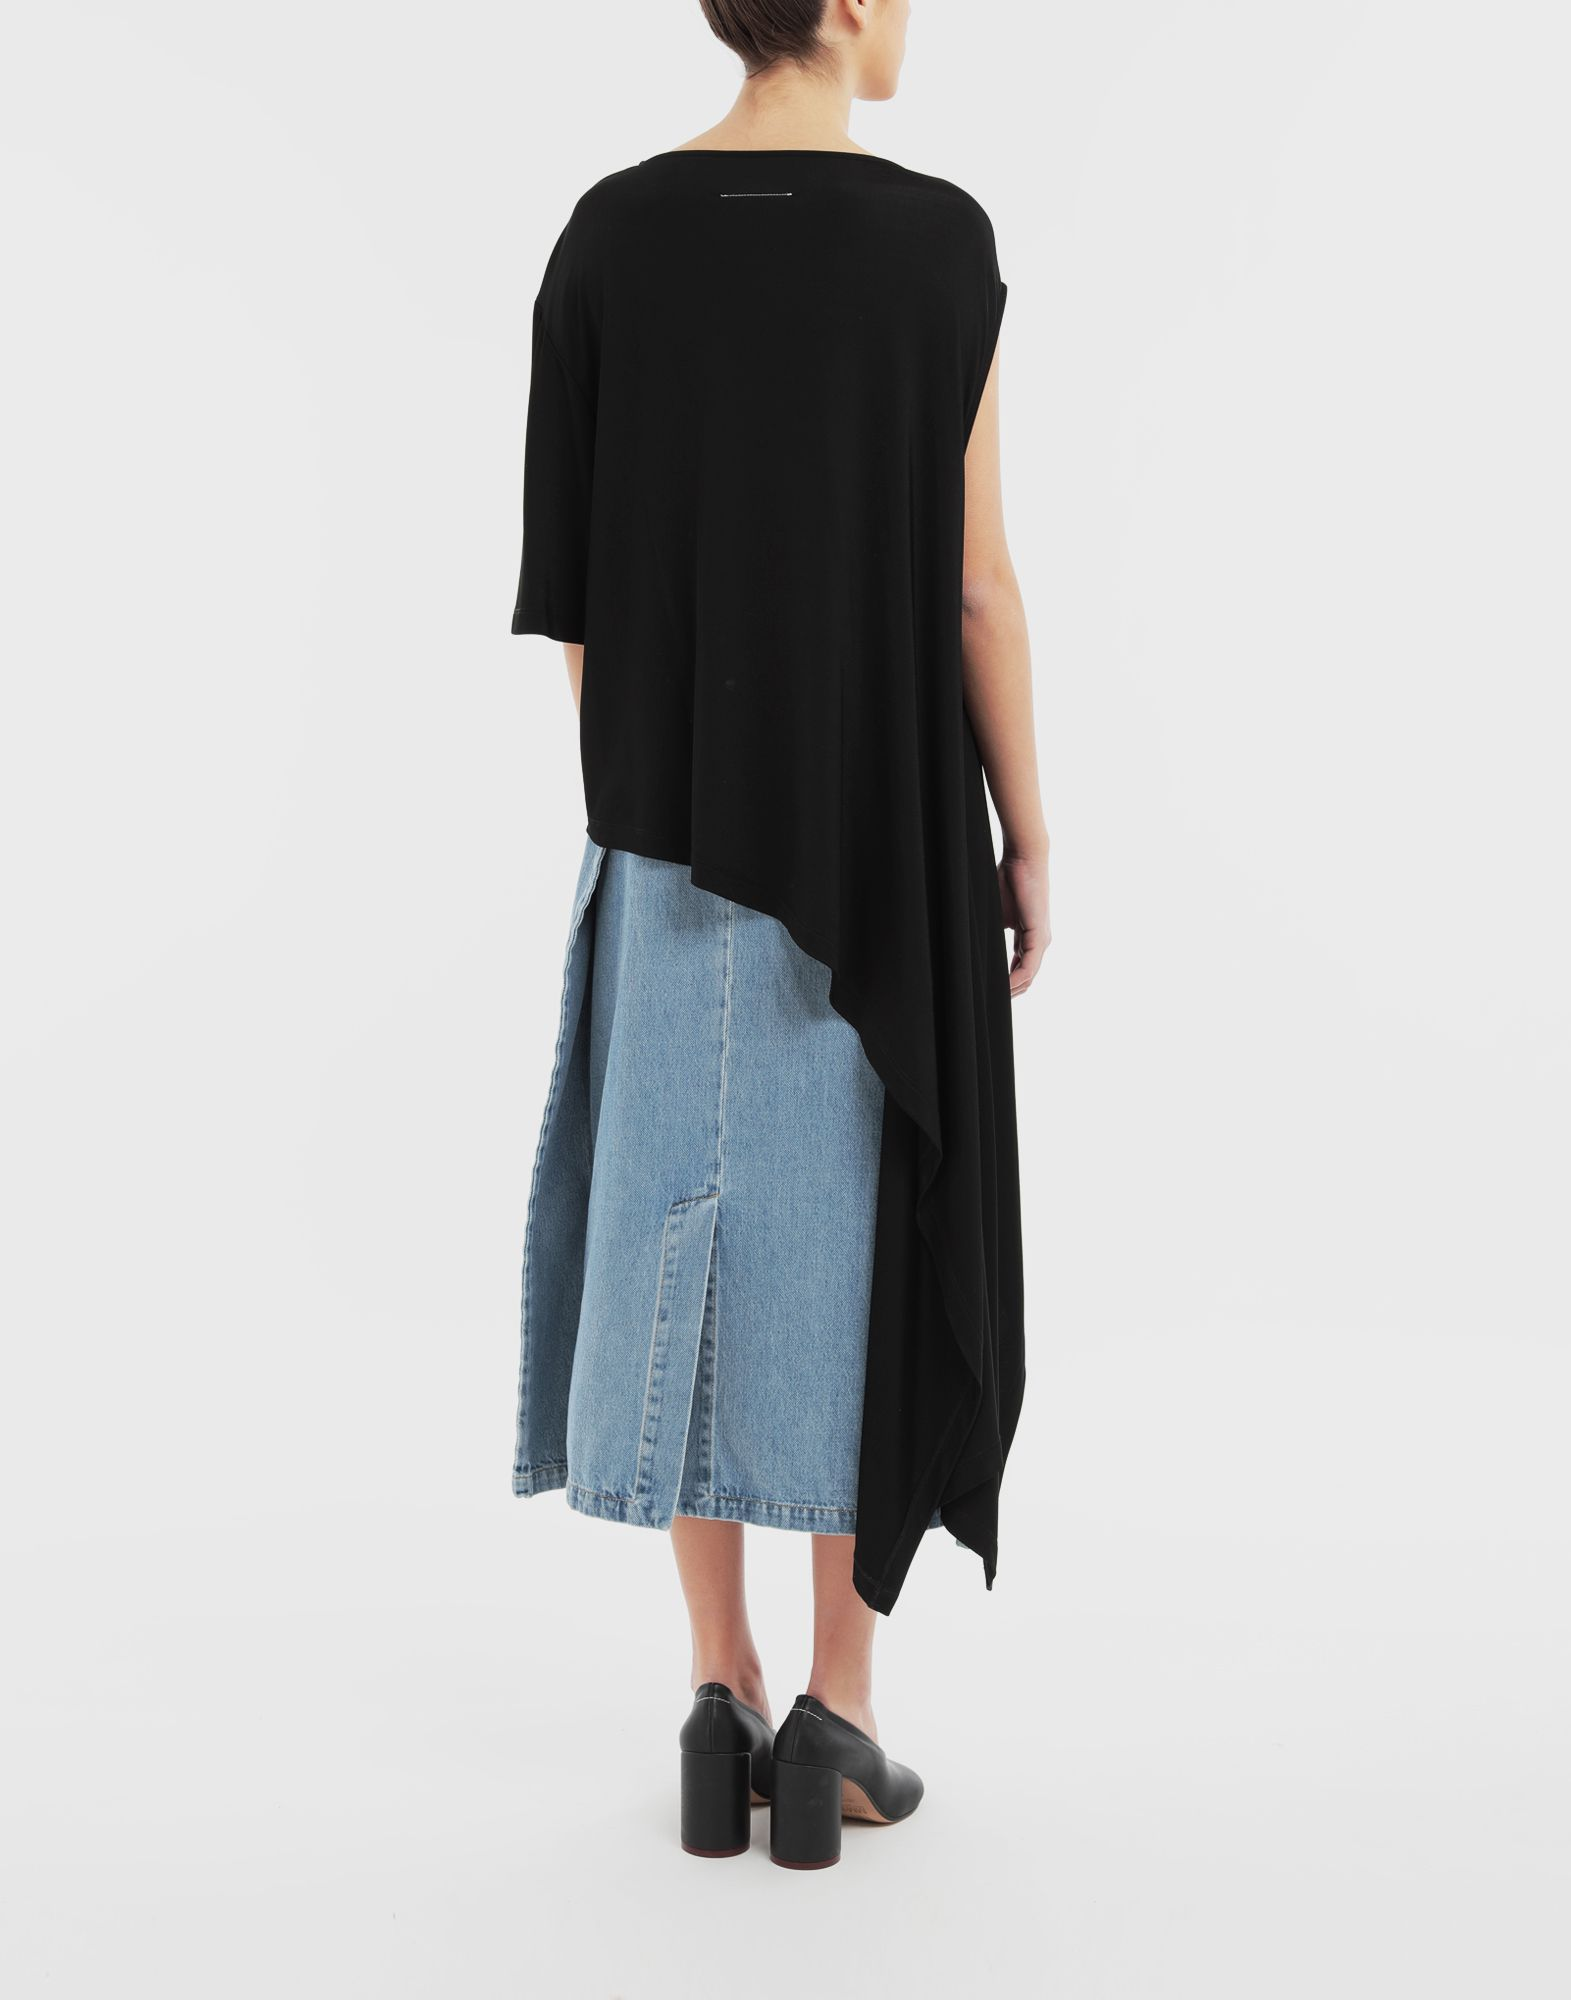 MM6 MAISON MARGIELA Asymmetric top Top Woman e